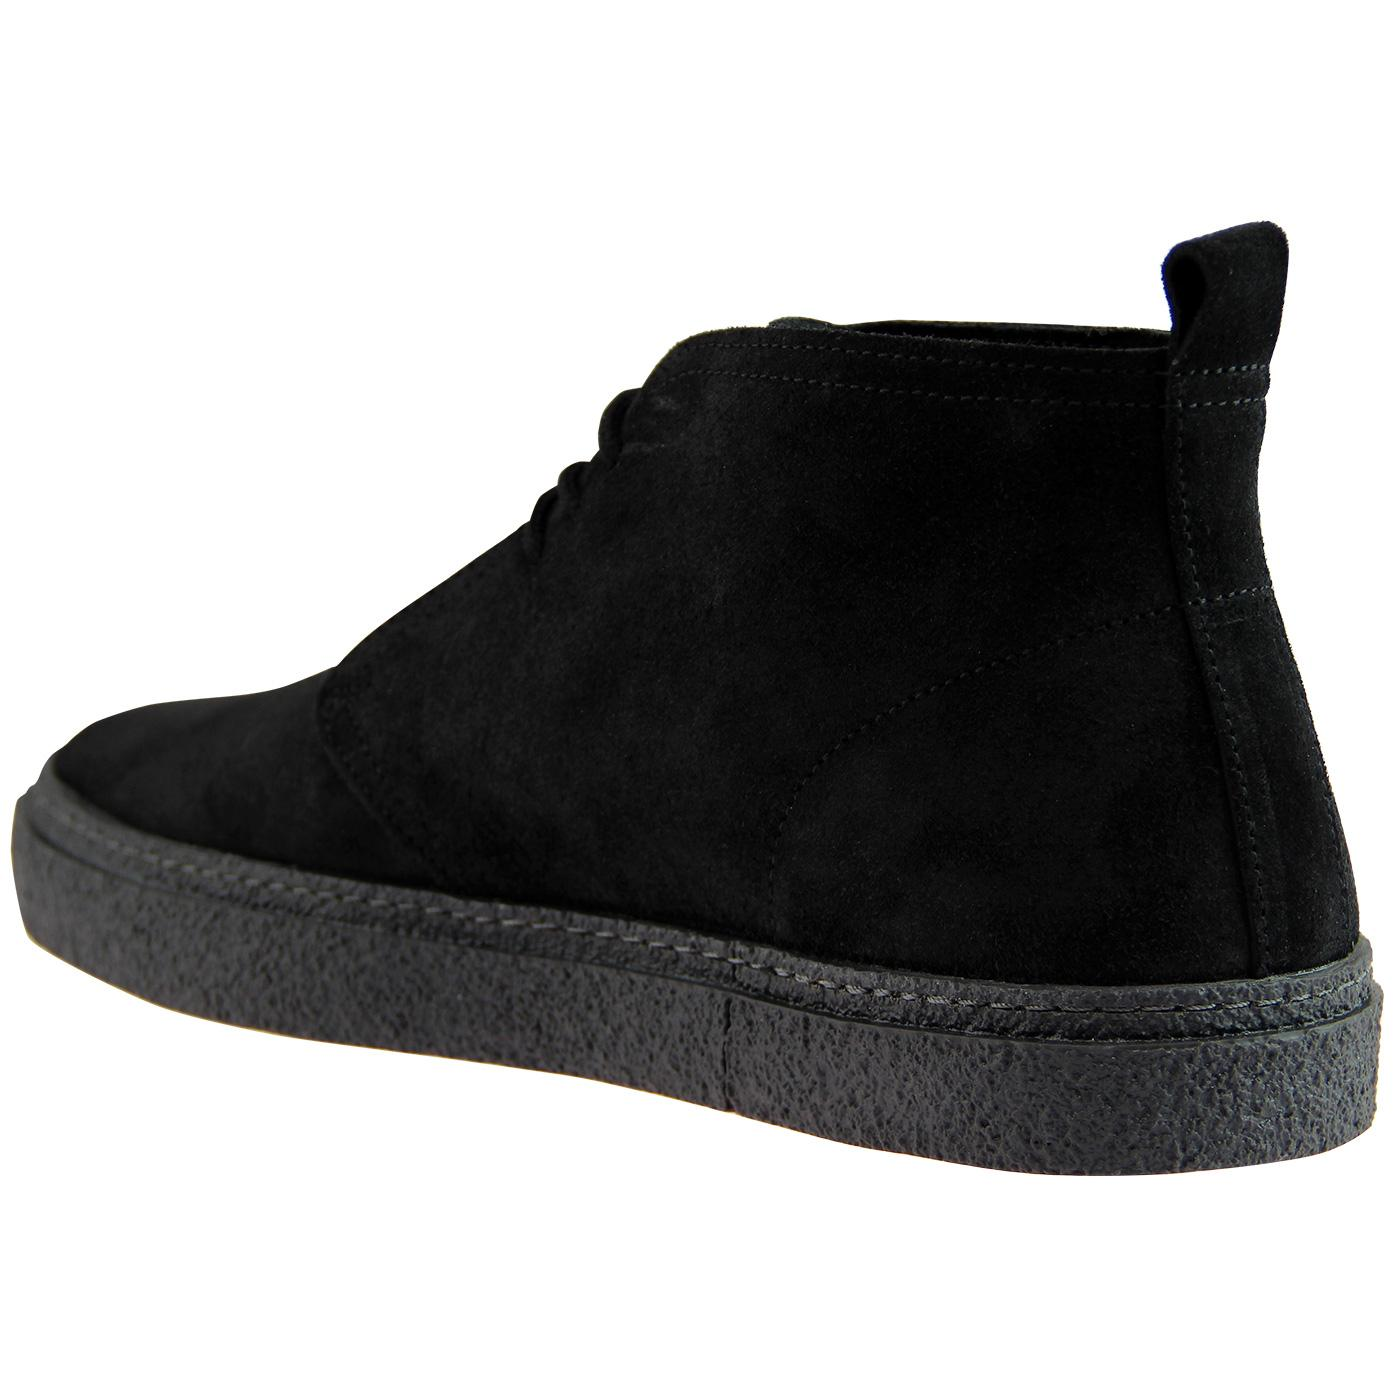 24bf256c57a FRED PERRY 'Hawley' Retro Mod Desert Boots in Black